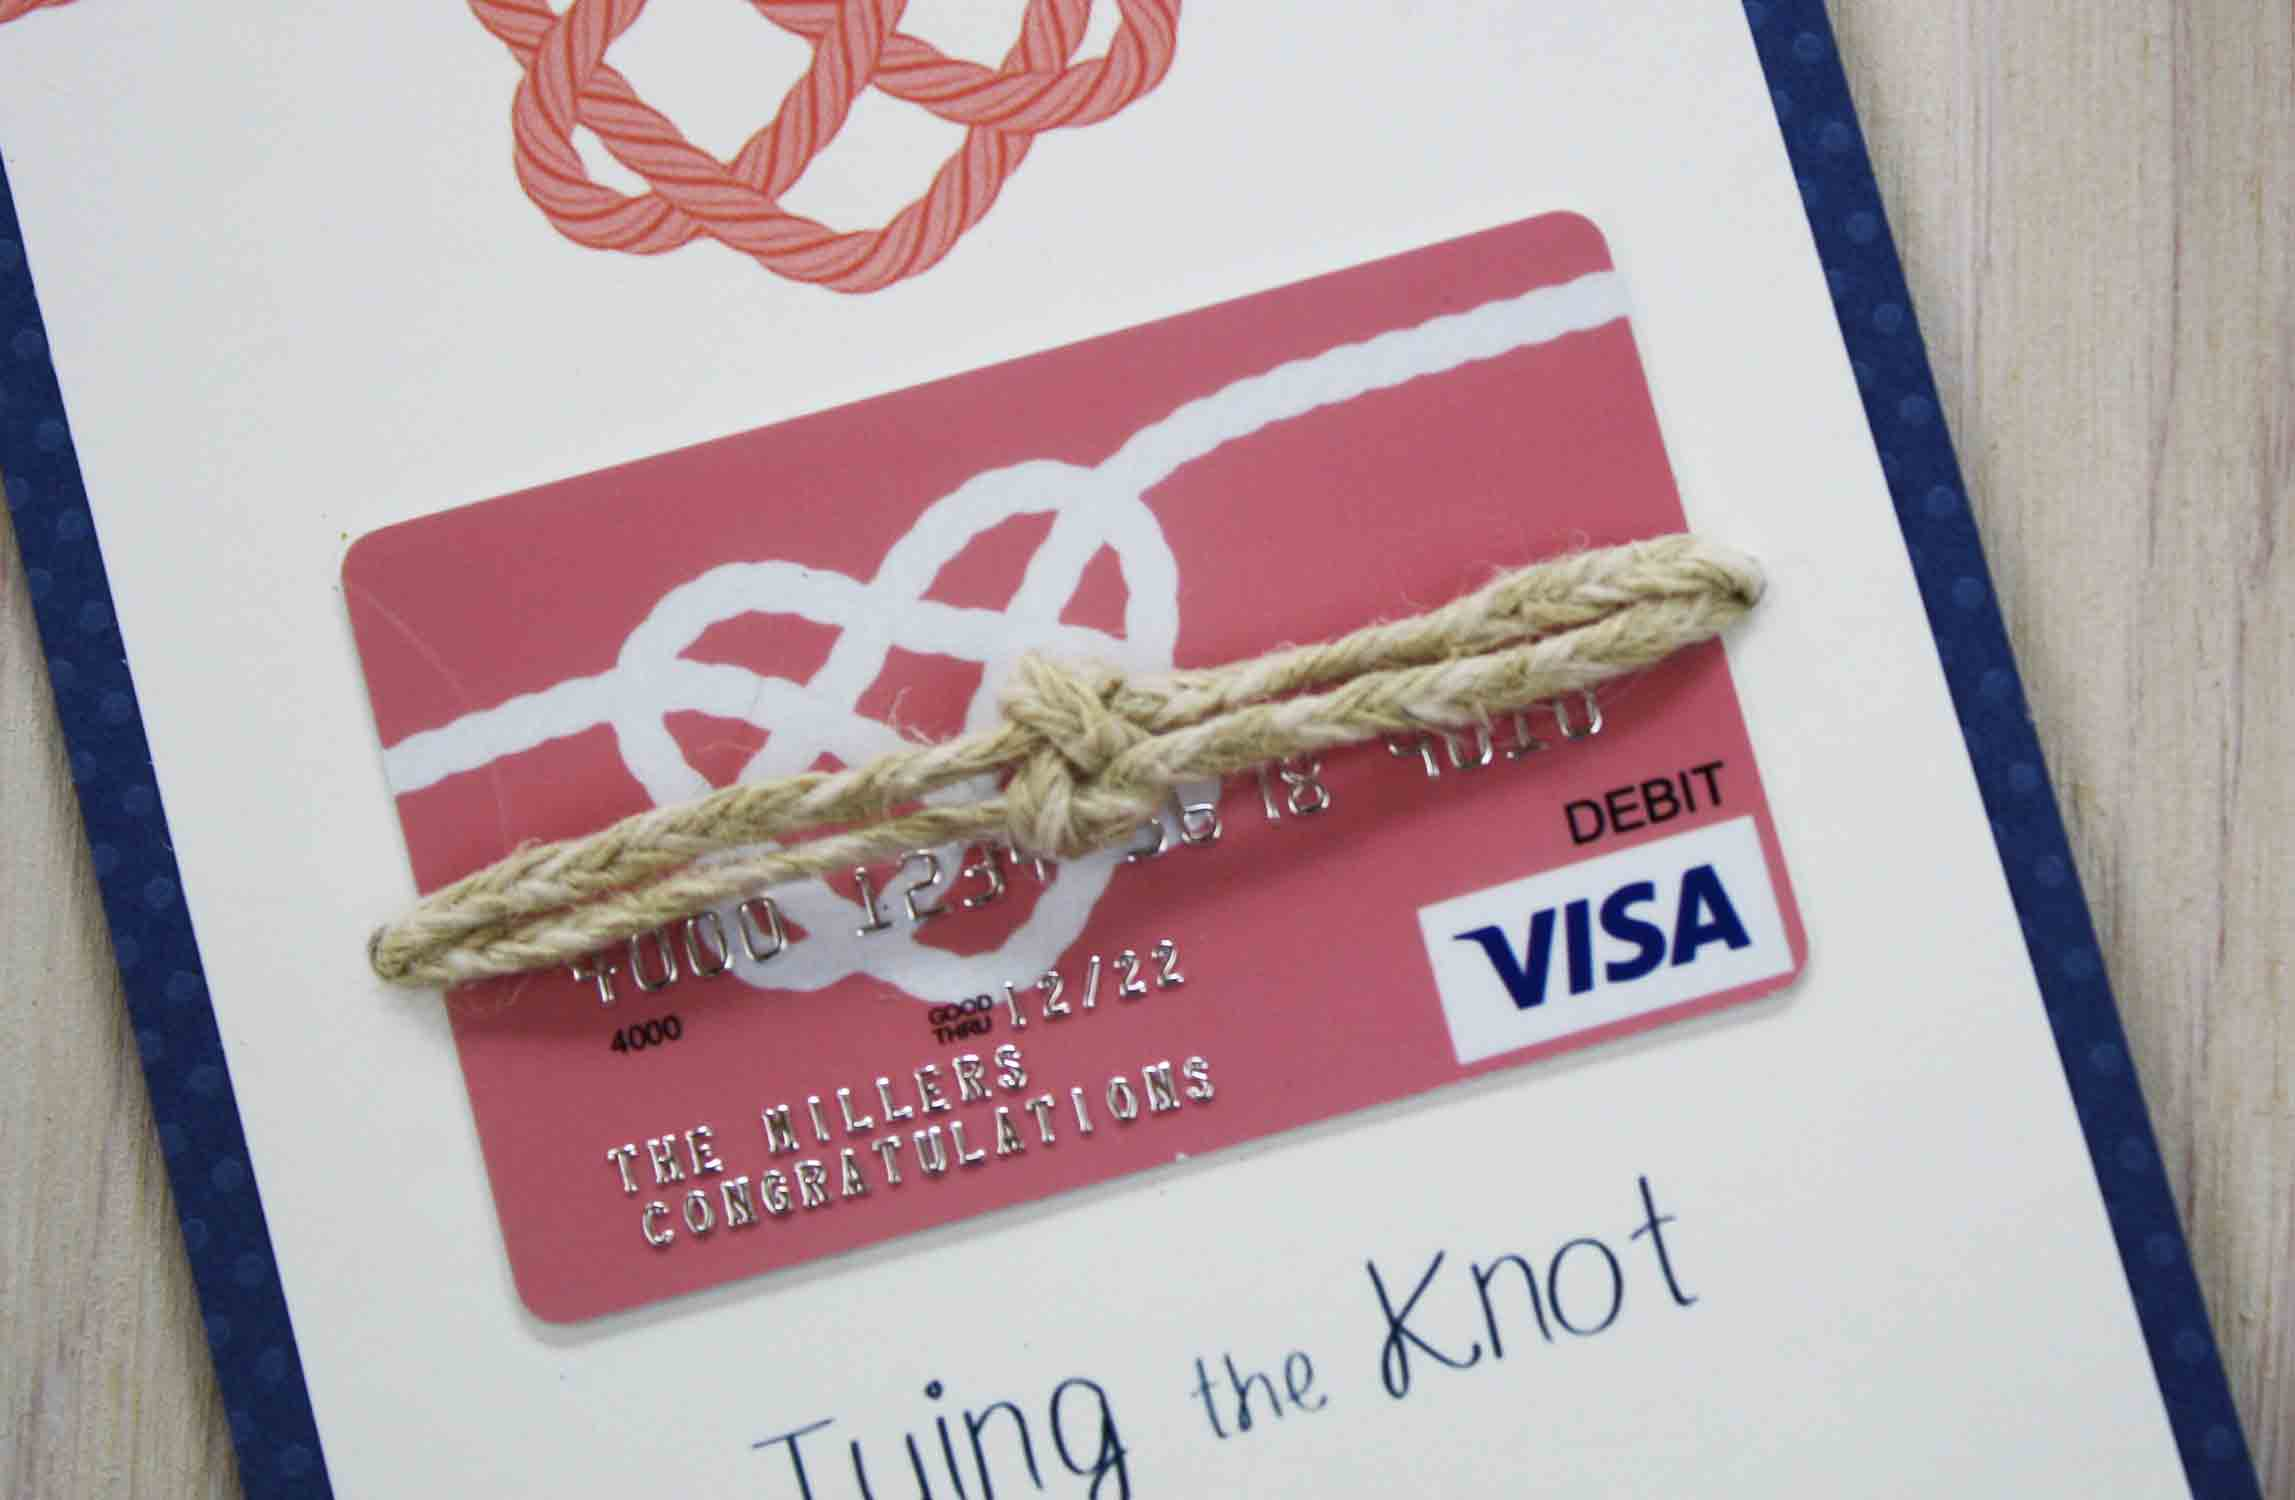 Tying the Knot Visa gift card